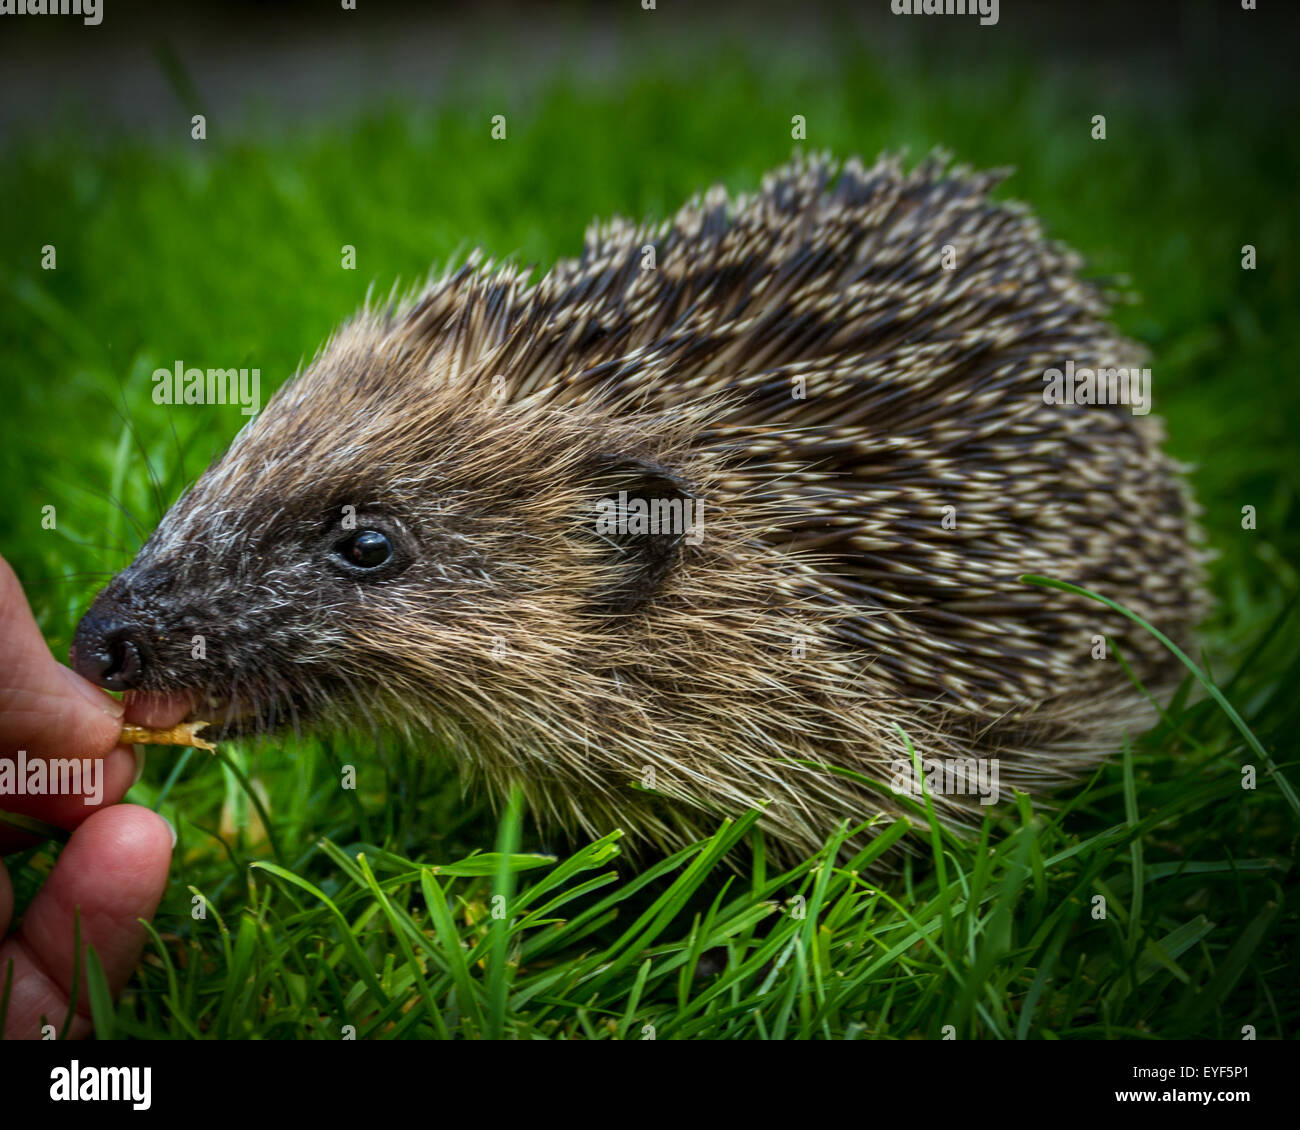 Young hedgehog (Erinaceus europaeus) being hand fed dried mealworms in the daytime. Taste before you try! - Stock Image